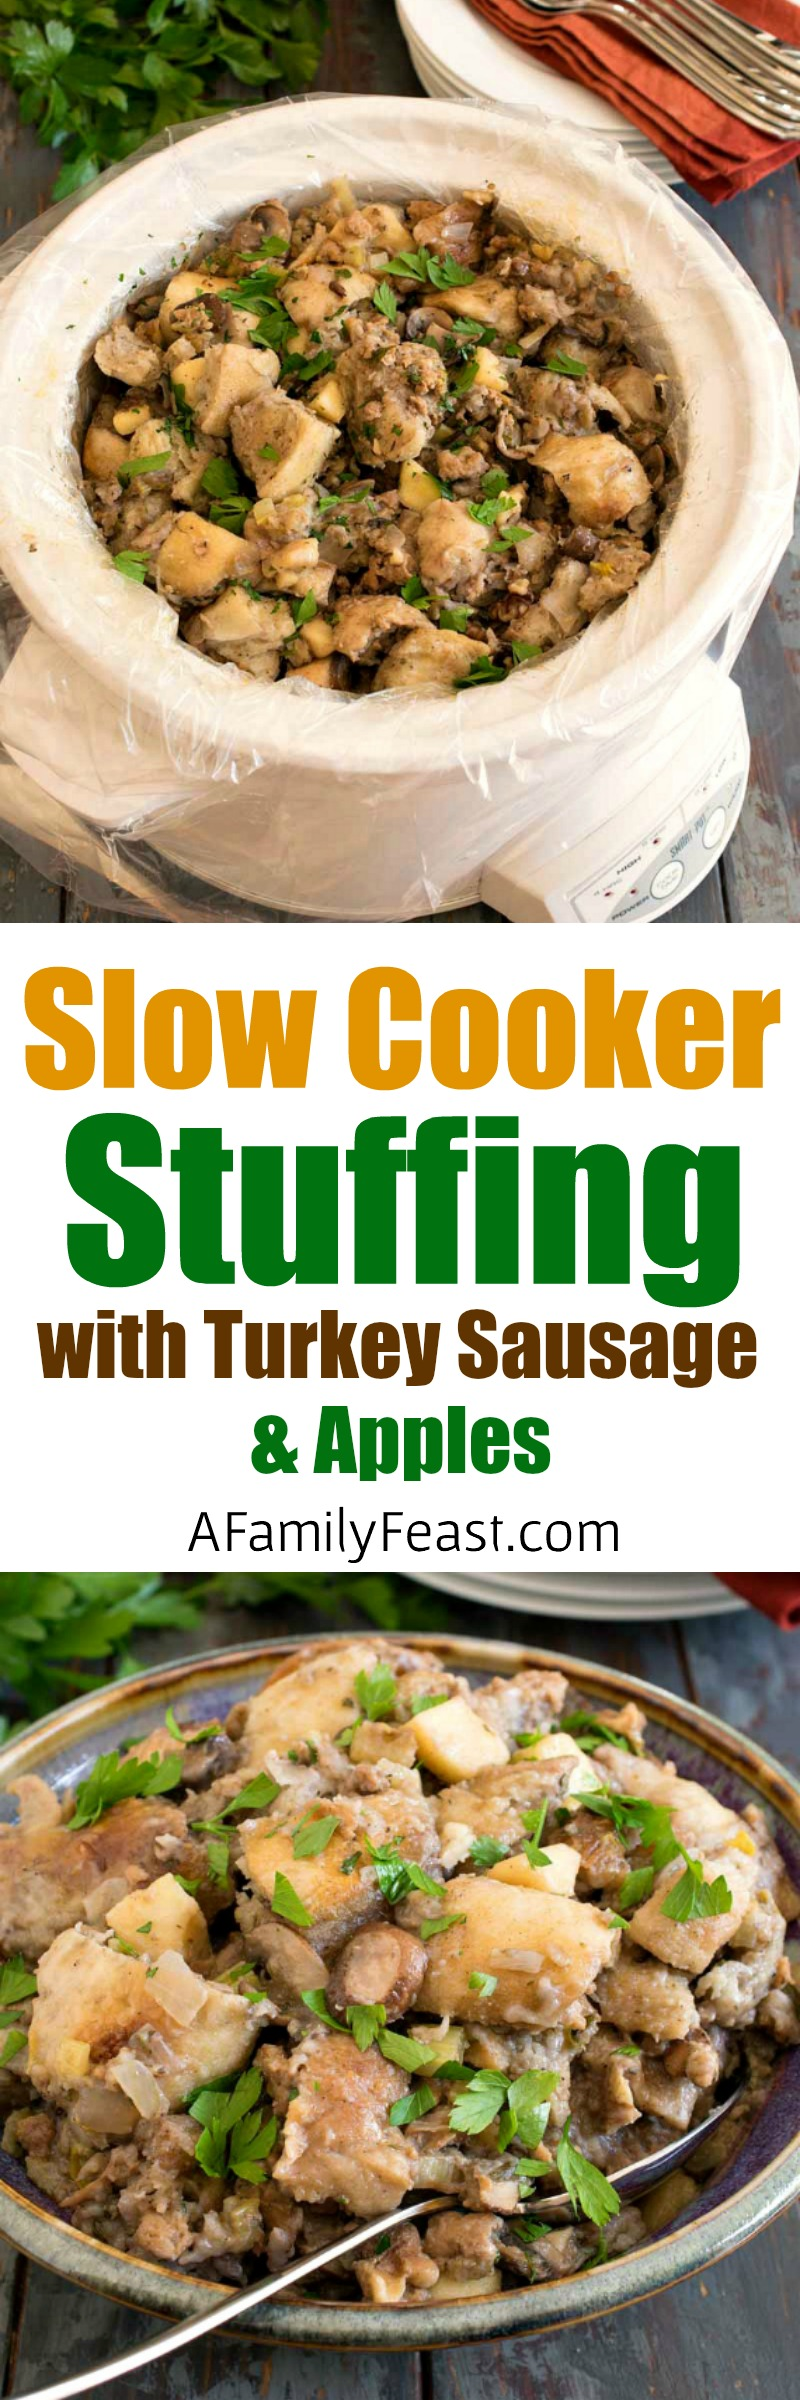 Slow Cooker Sourdough Stuffing with Turkey Sausage and Apples - Free up oven space and make this delicious Thanksgiving stuffing in the slow cooker.